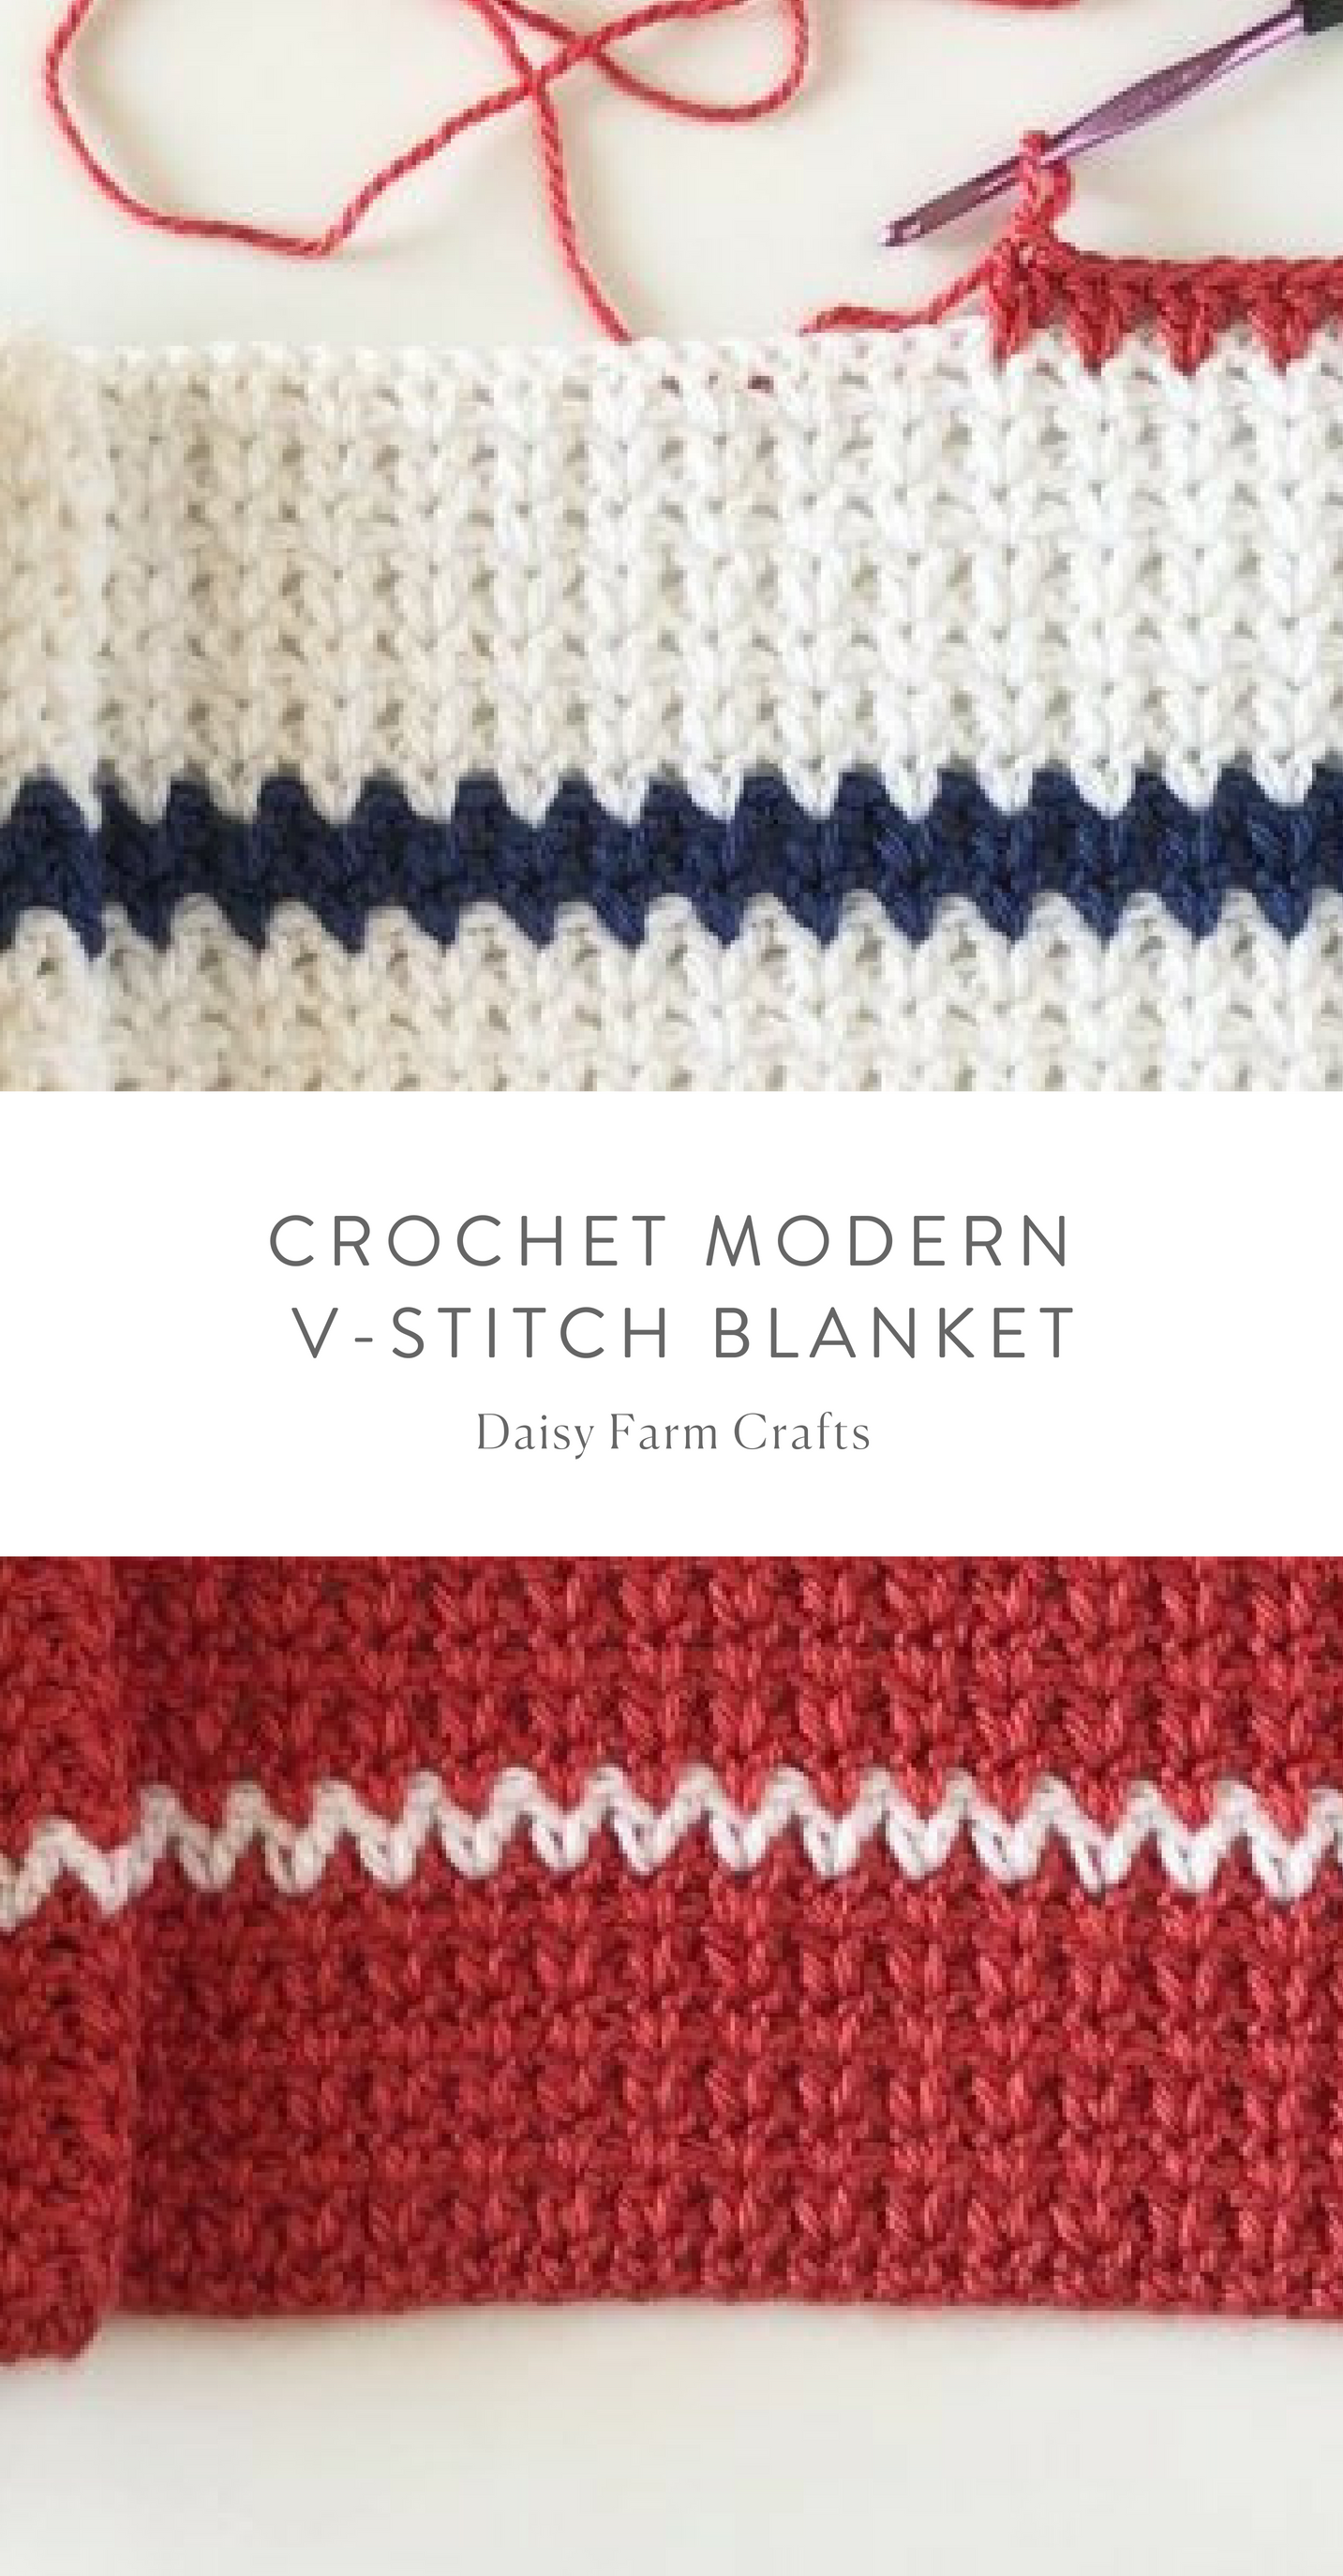 Free Pattern - Crochet Modern V-Stitch Blanket in Red, White and ...